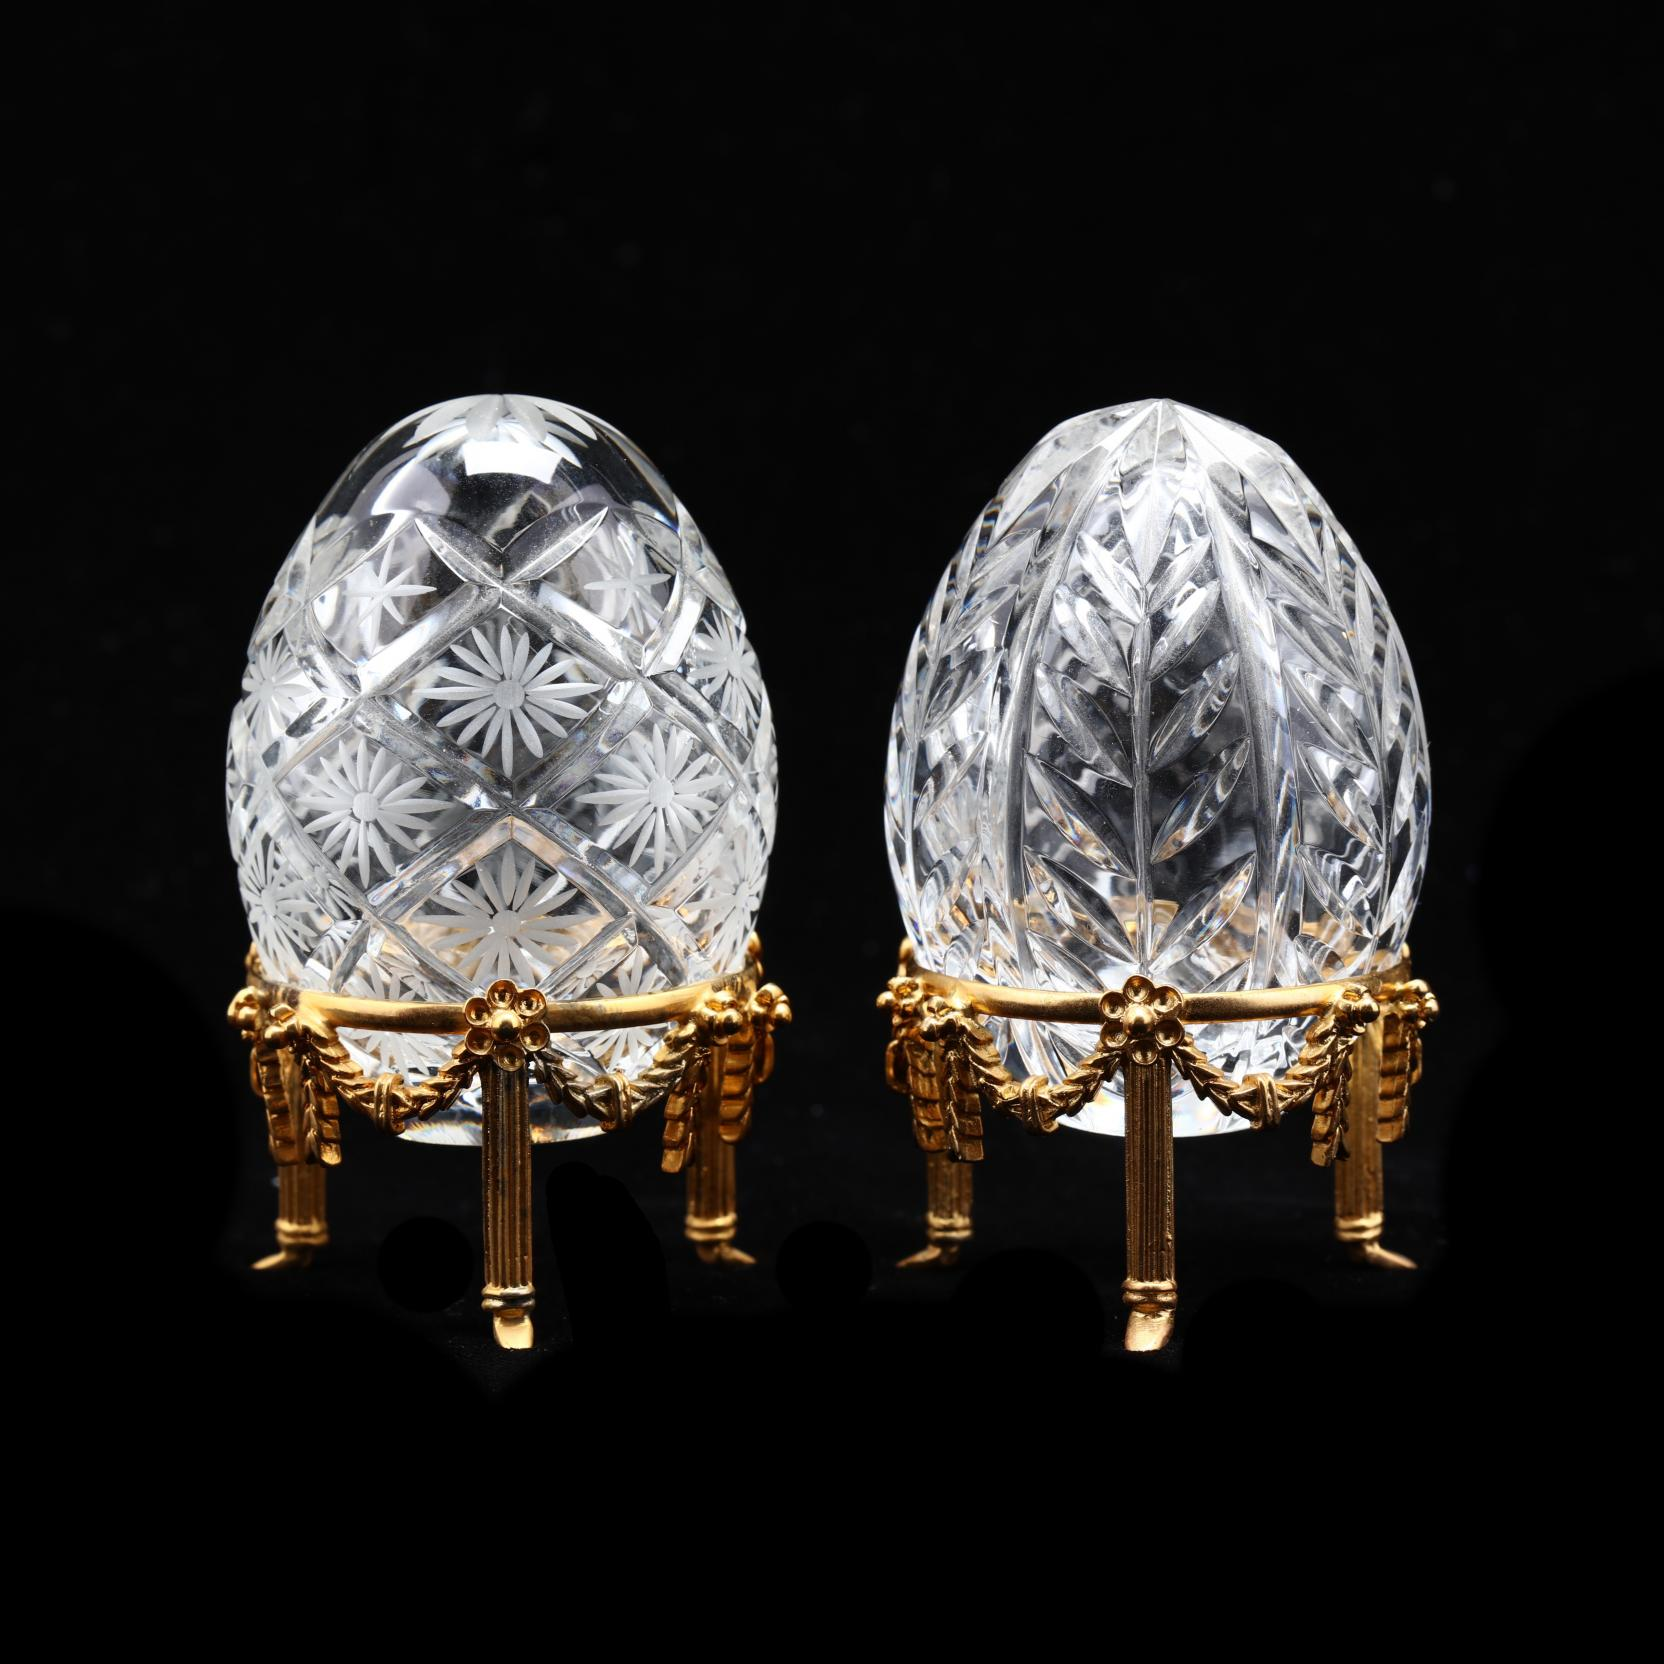 pair-of-crystal-faberge-petite-eggs-on-stands